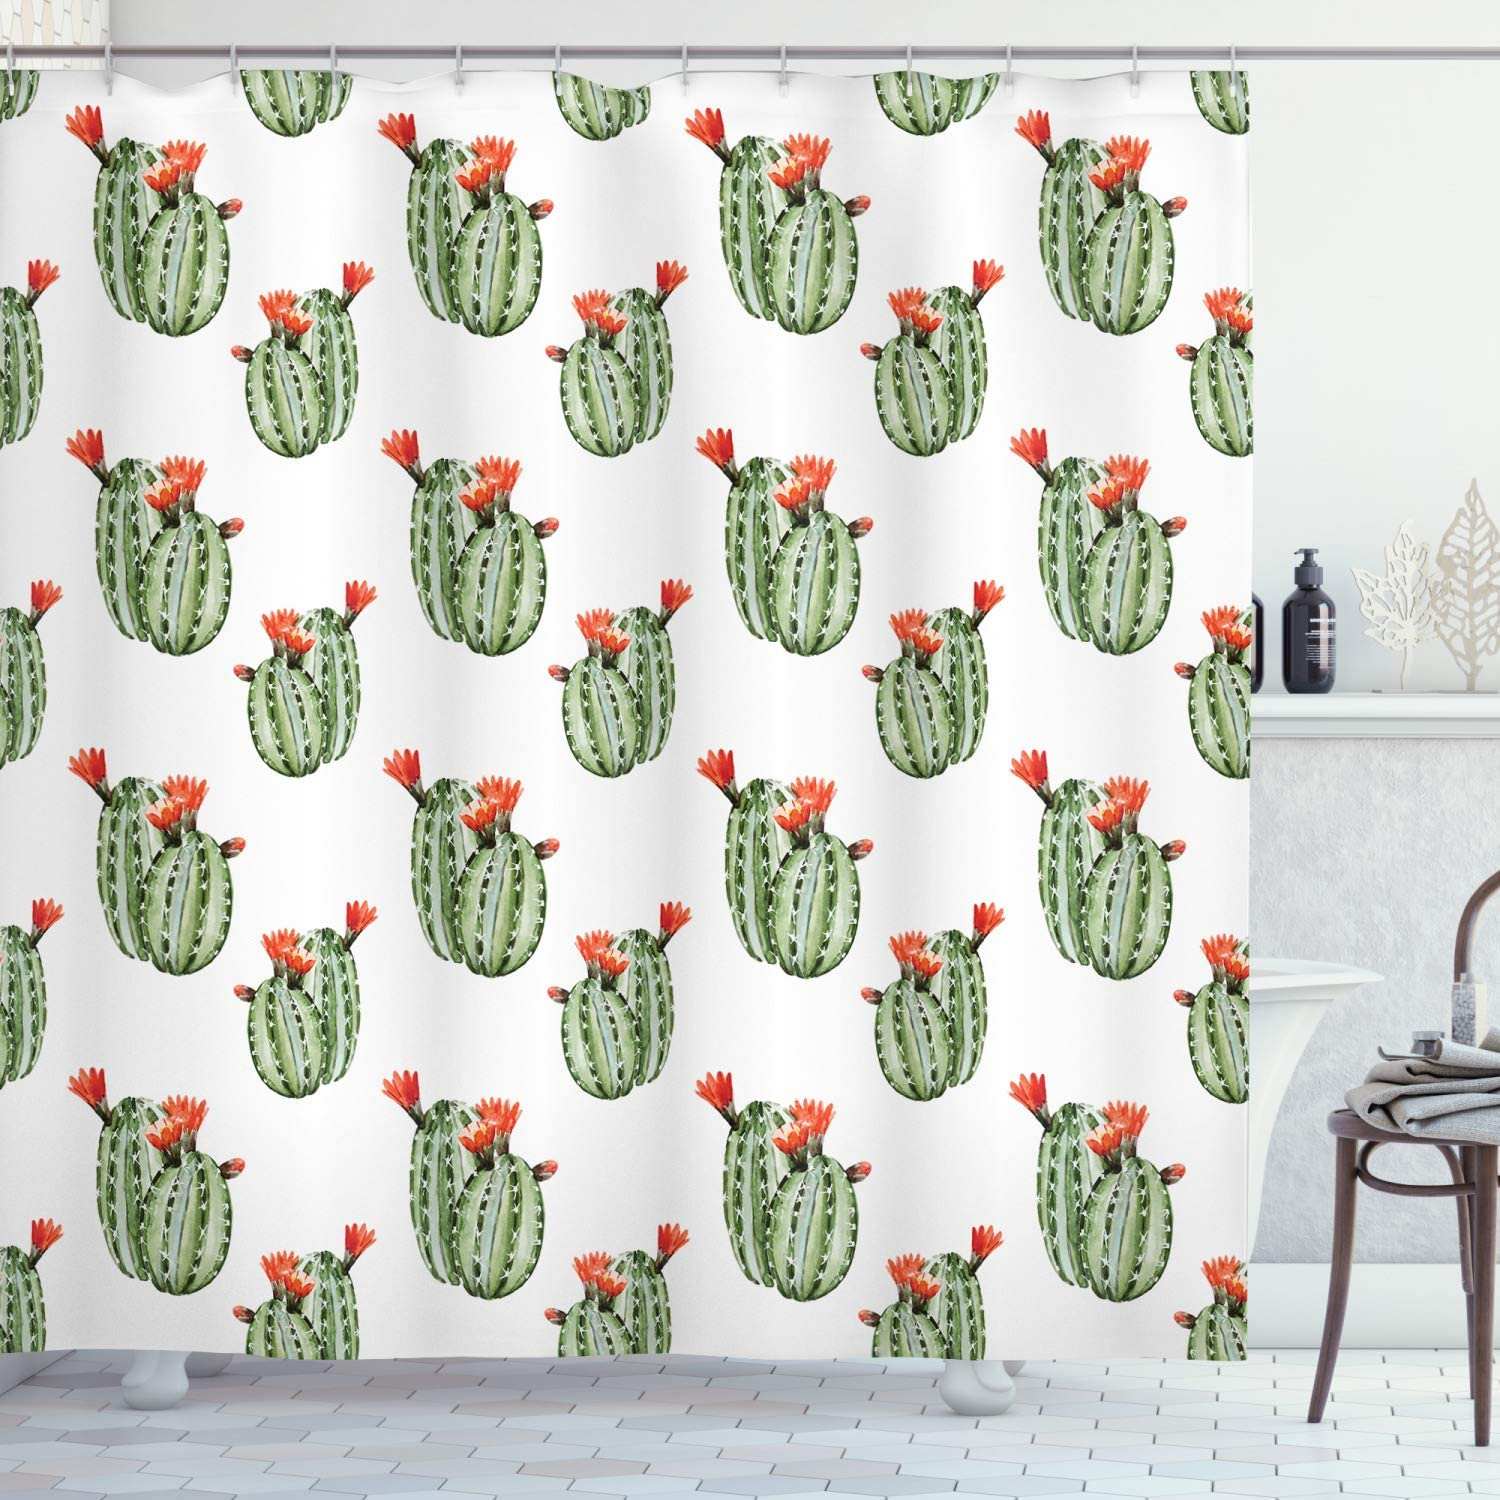 Ambesonne Cactus Shower Curtain, Cactus with Spikes and Red Flowers Mexican Hot Desert Vintage Image Artwork, Cloth Fabric Bathroom Decor Set with Hooks, 70